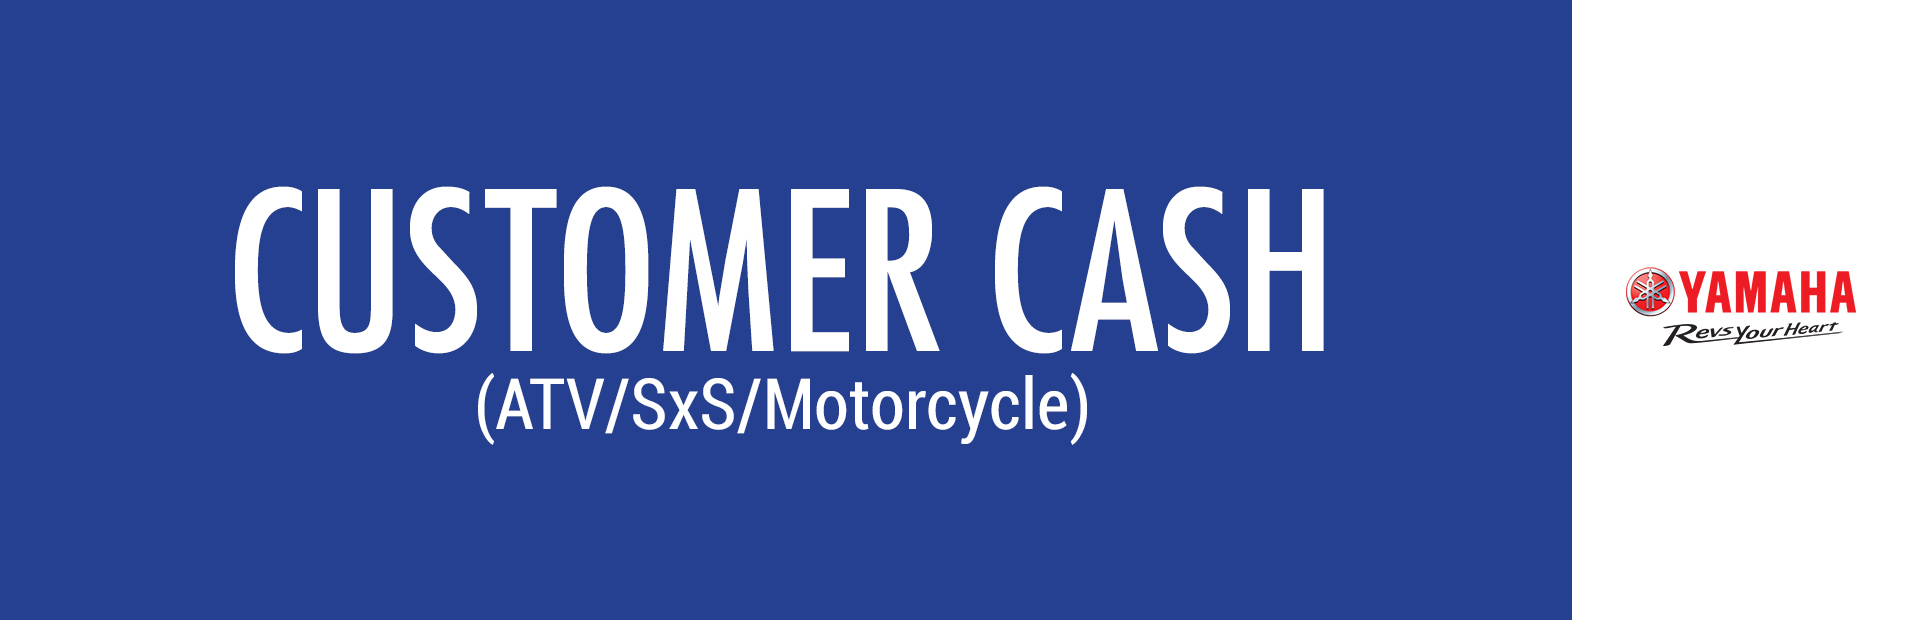 Yamaha: Customer Cash (ATV/SxS/Motorcycle)